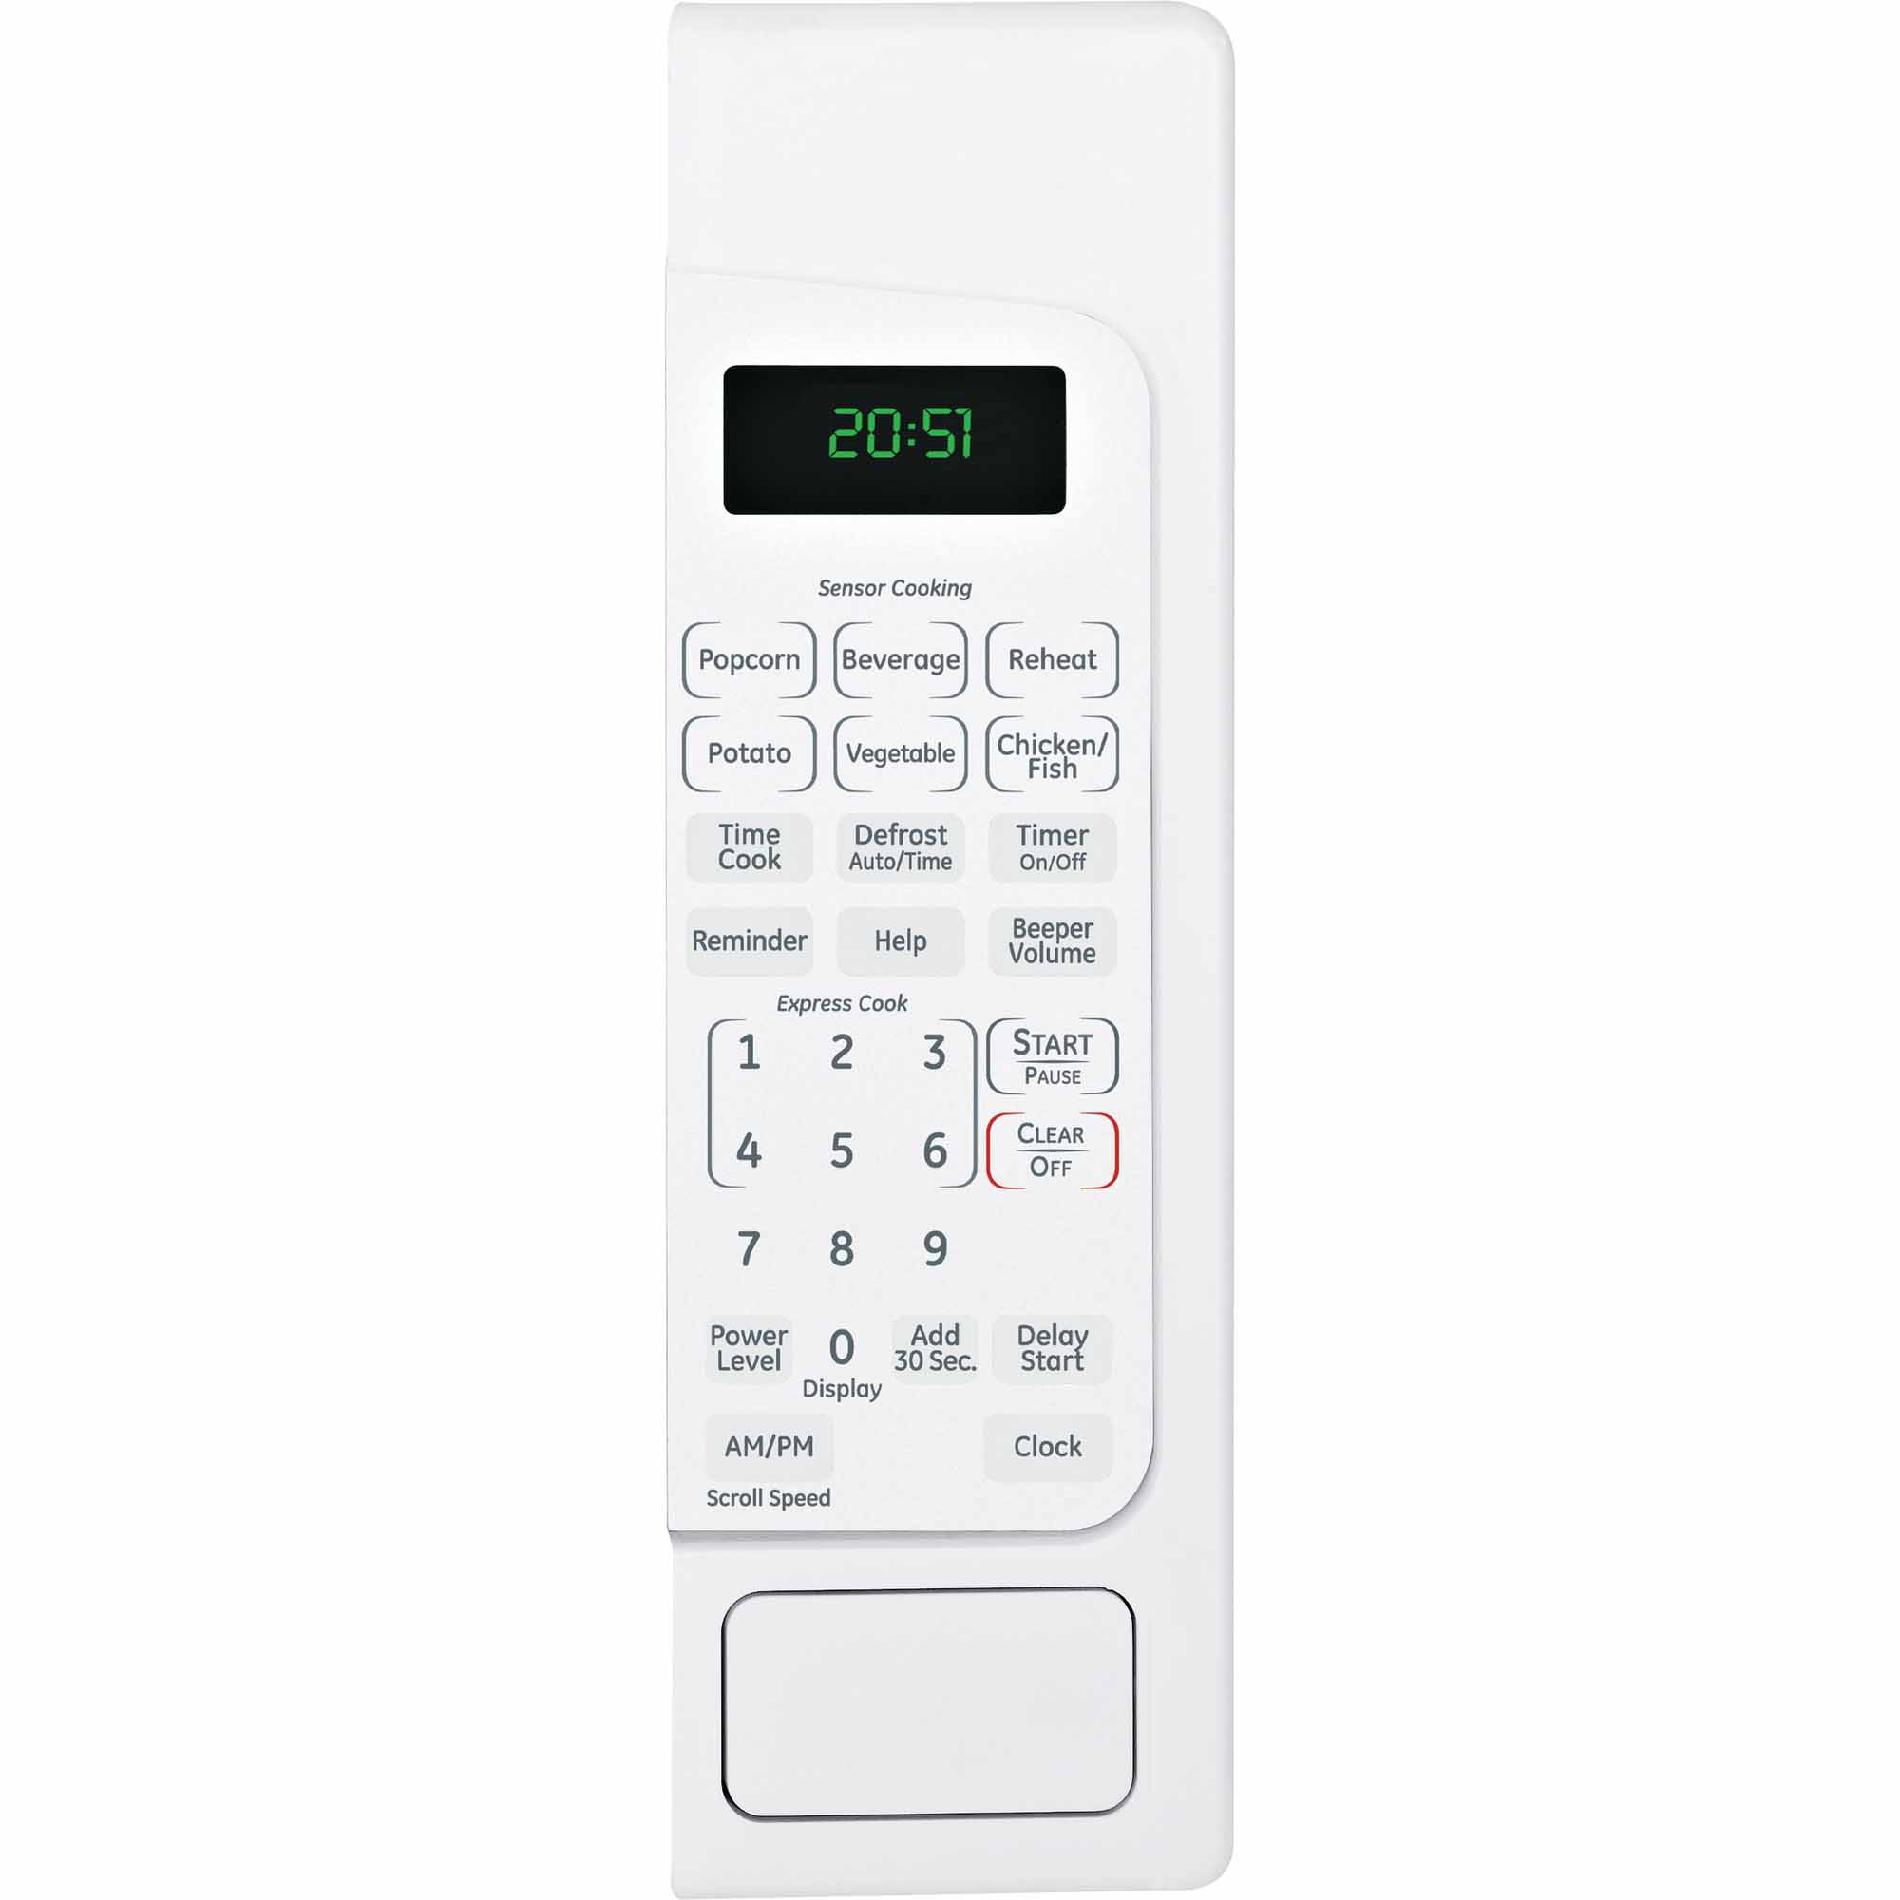 GE 2.0 cu. ft. Countertop Microwave Oven - White